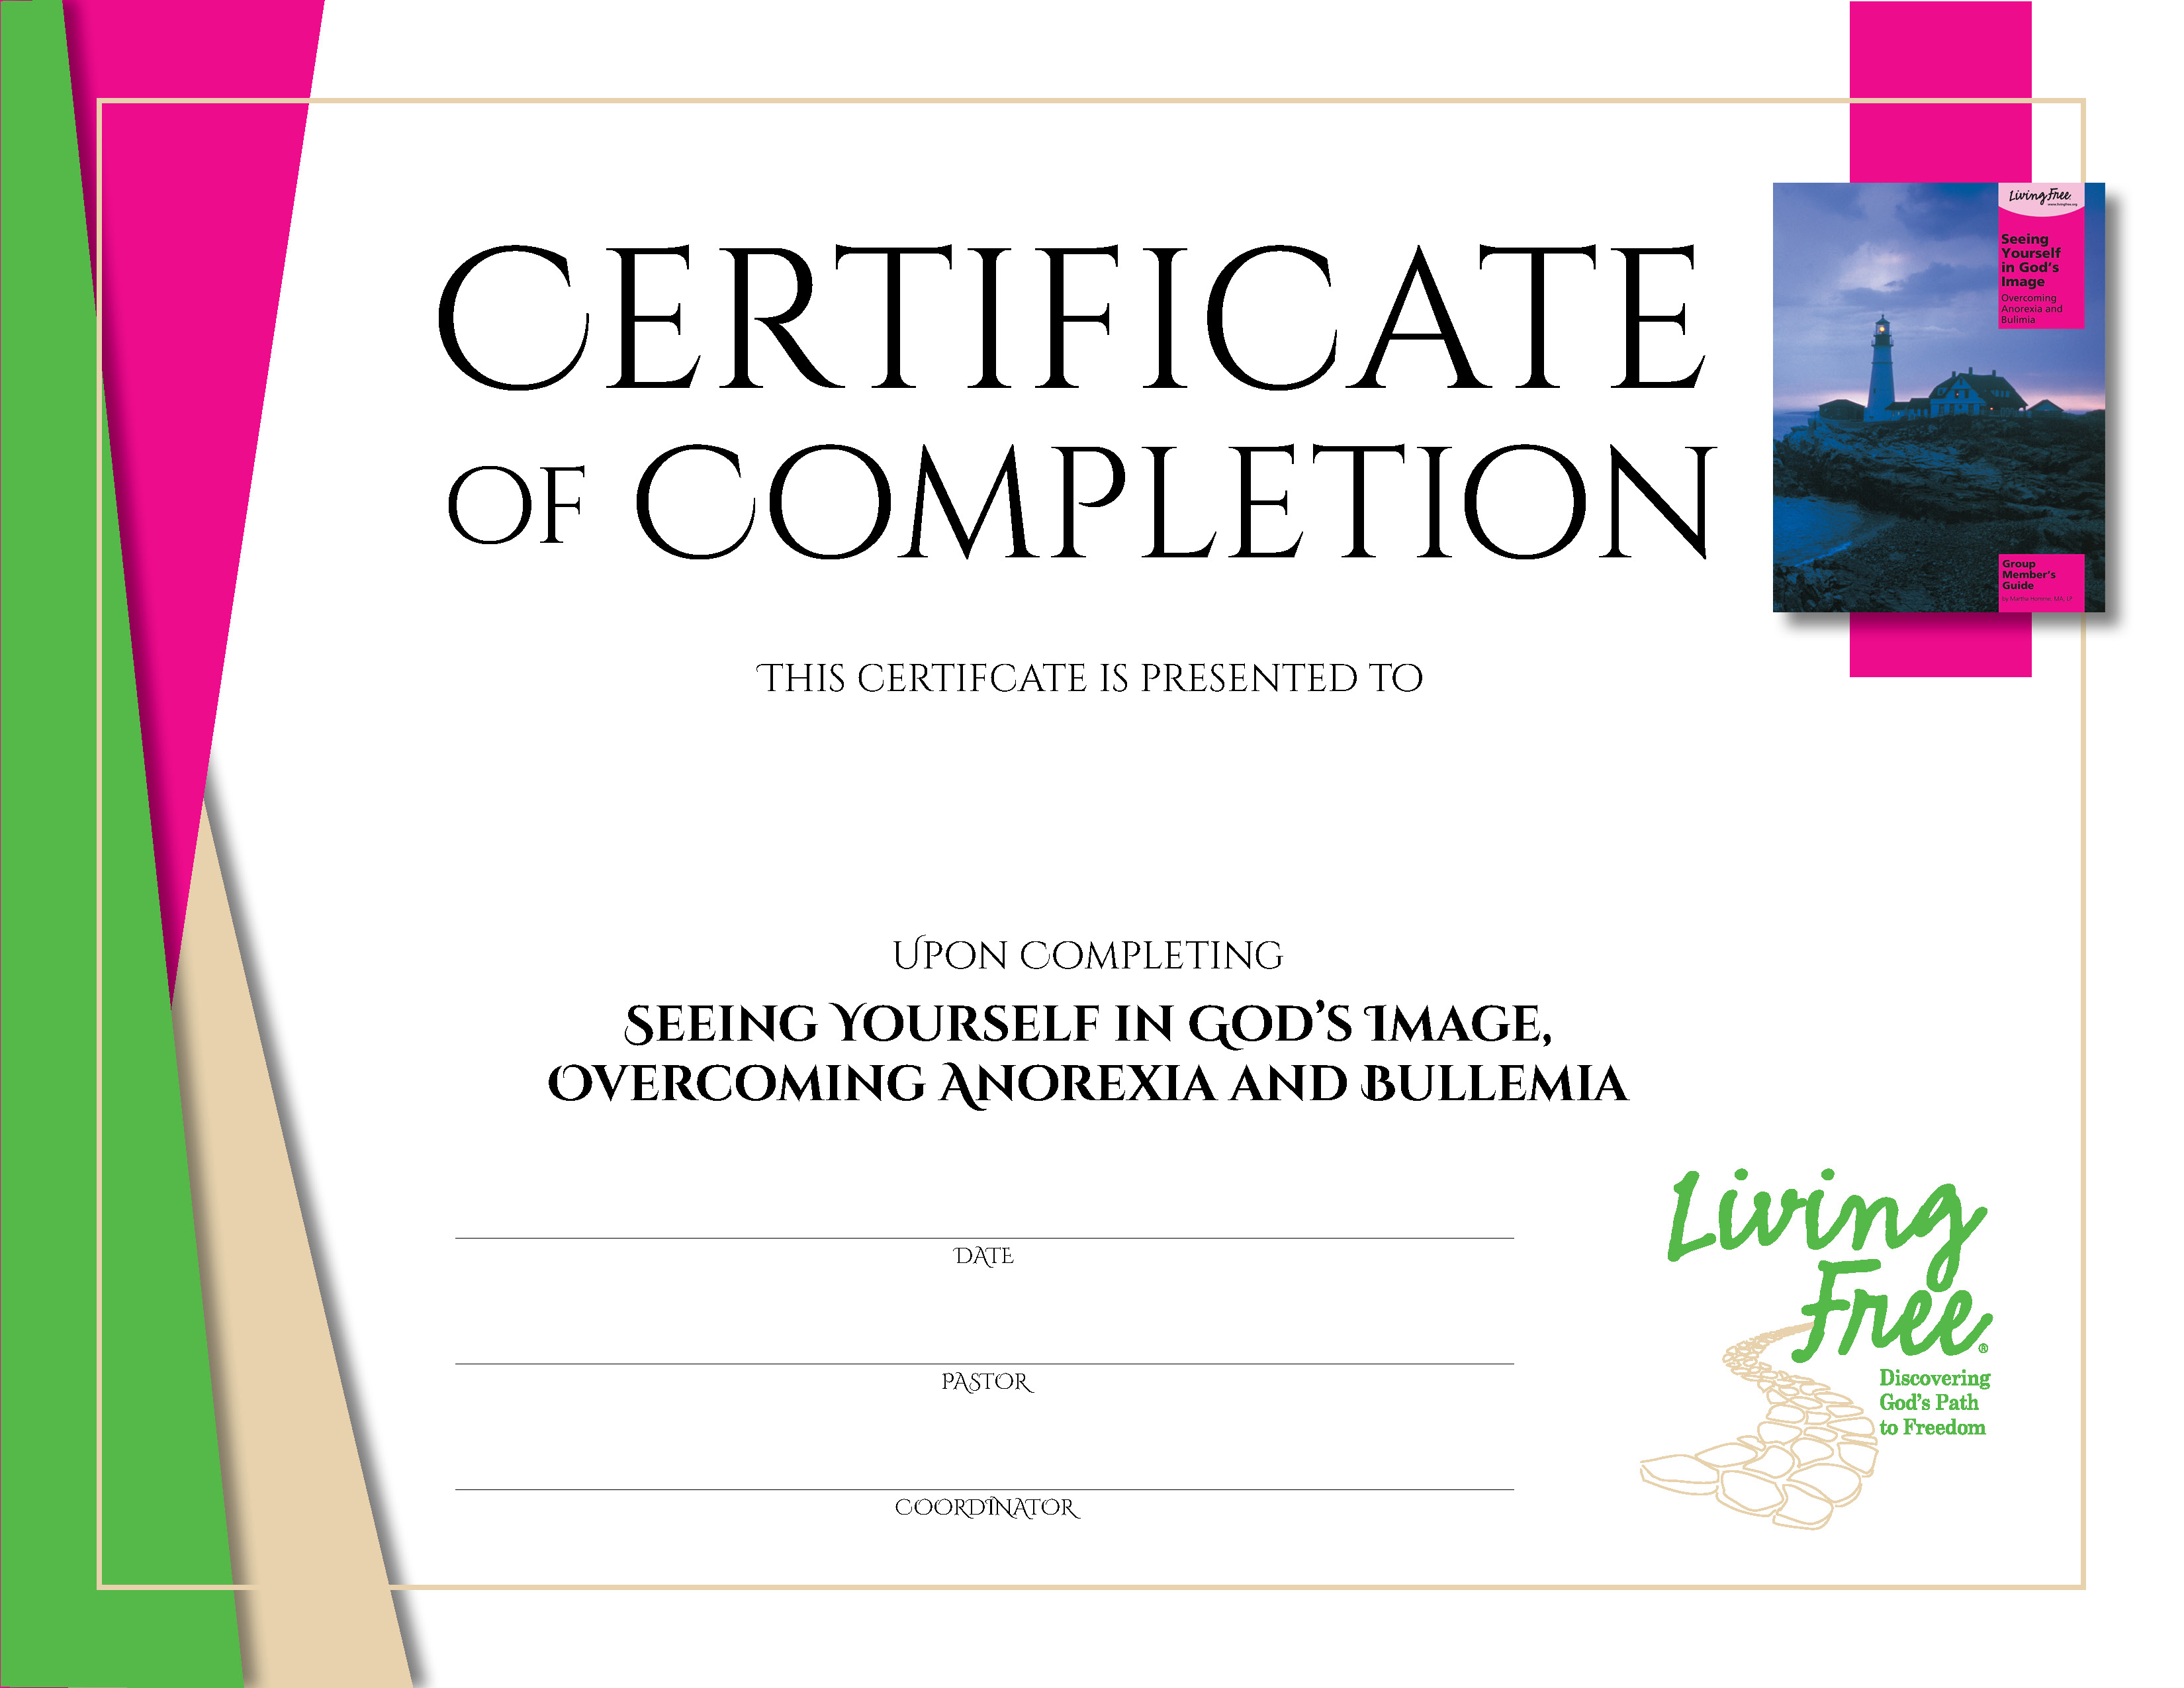 Seeing Yourself in God's Image Digital Certificate